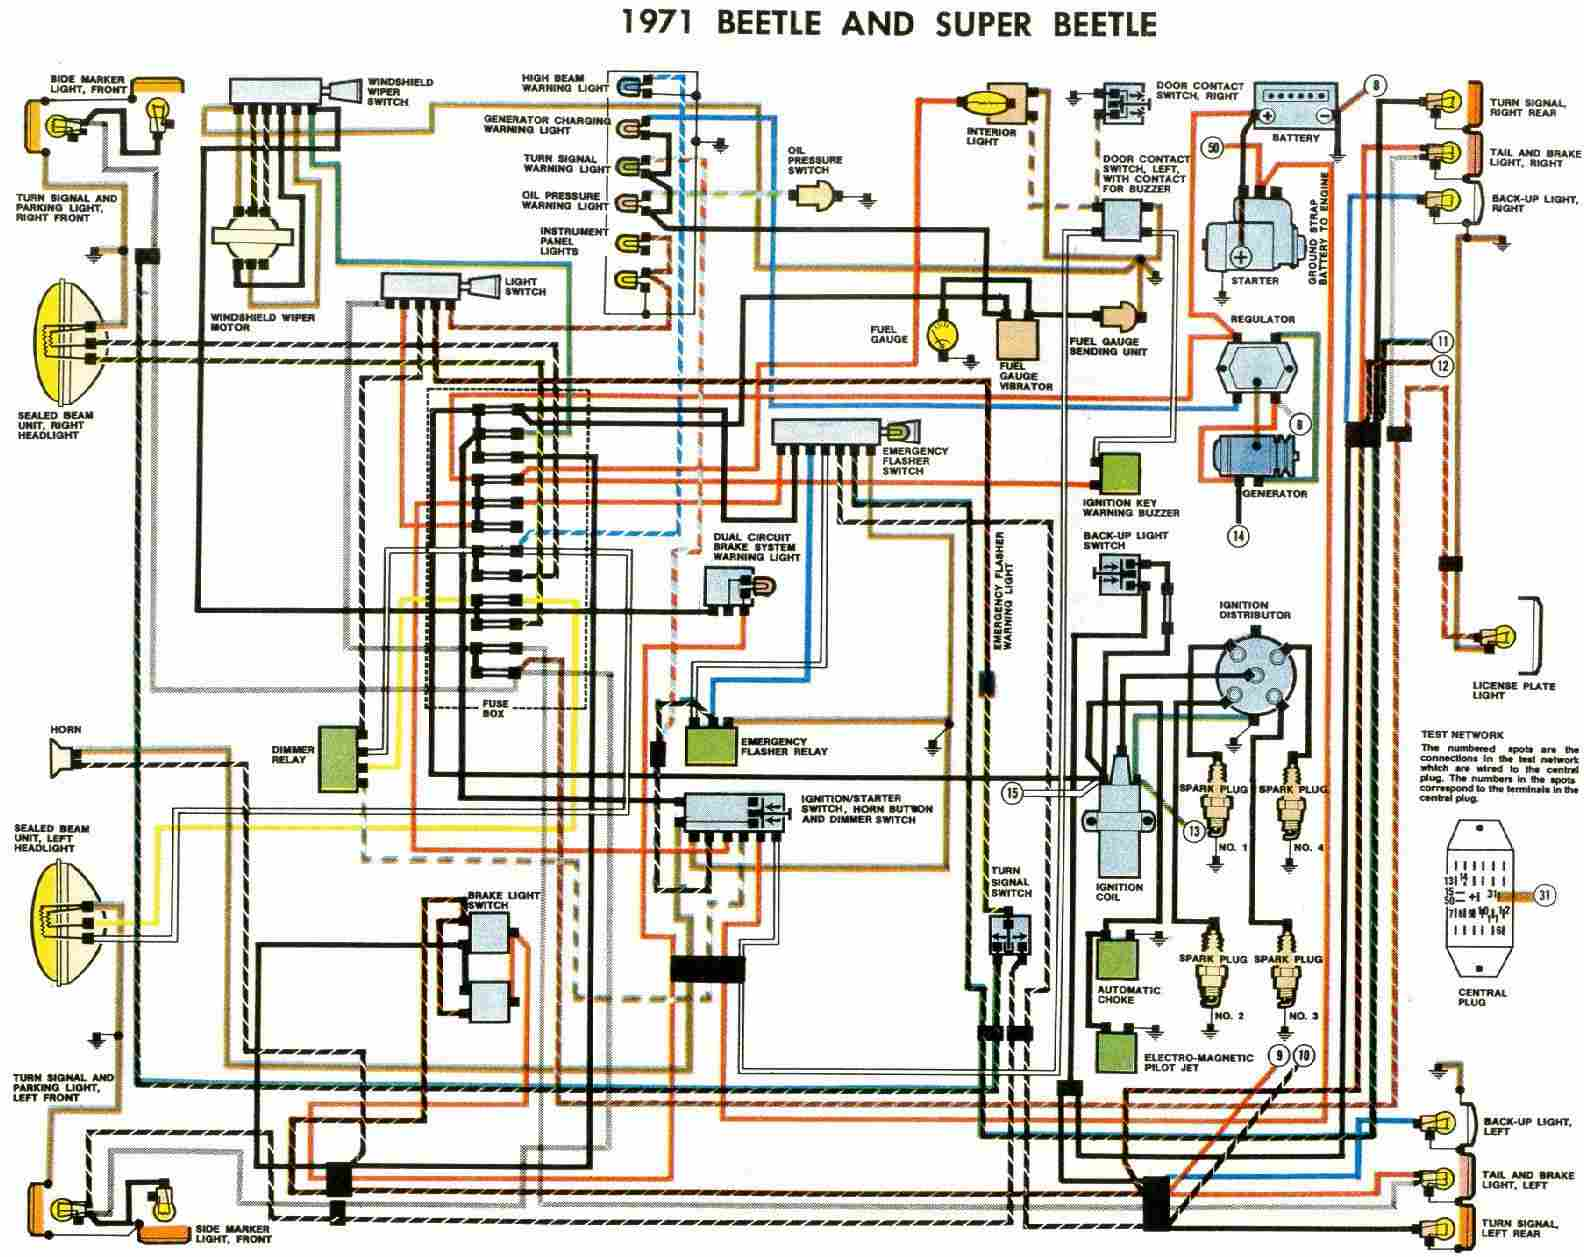 net image for wiring diagram